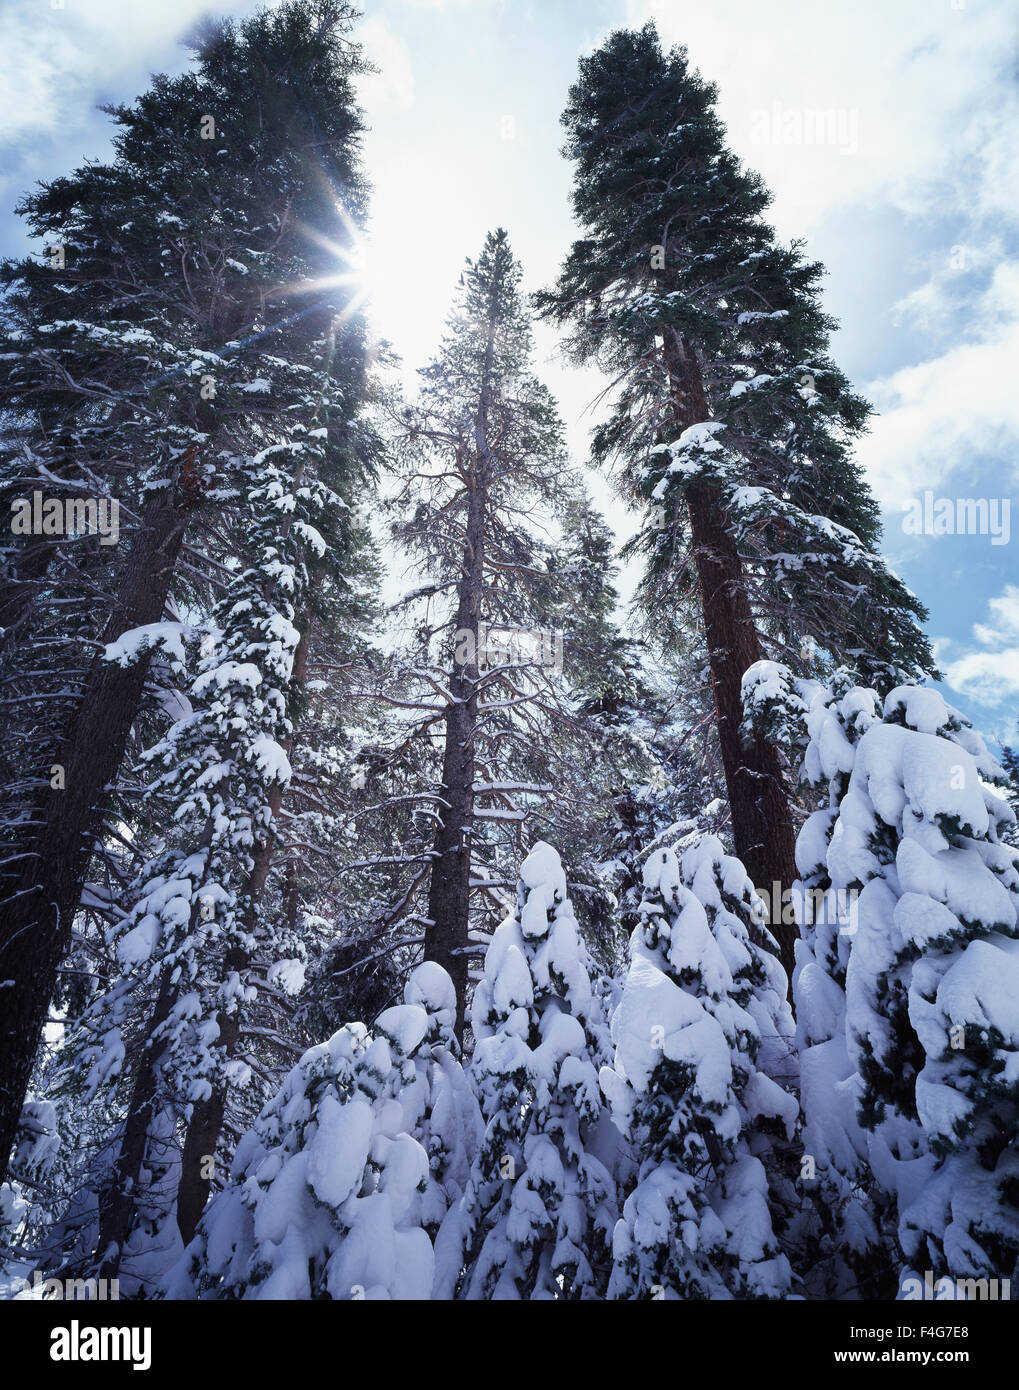 California, Sierra Nevada Mountains, Inyo National Forest, snow-covered old growth Red Fir Trees (Abies magnifica). - Stock Image